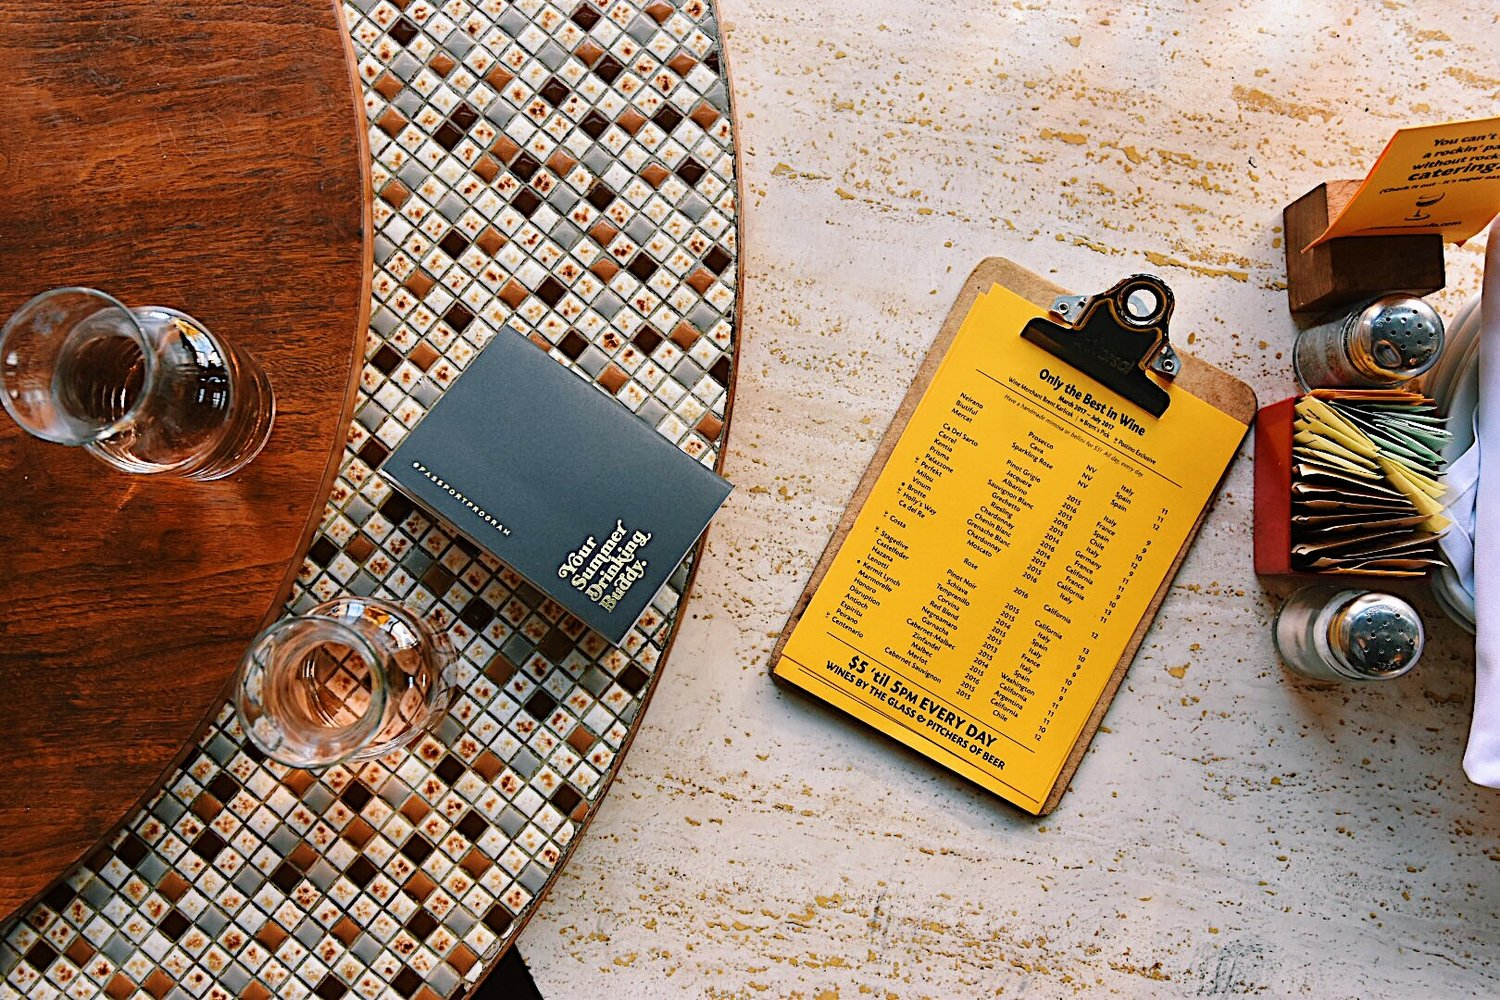 A Pocketsized Field Guide Full Of 2for1 Craft Beverages! The Passport  Program